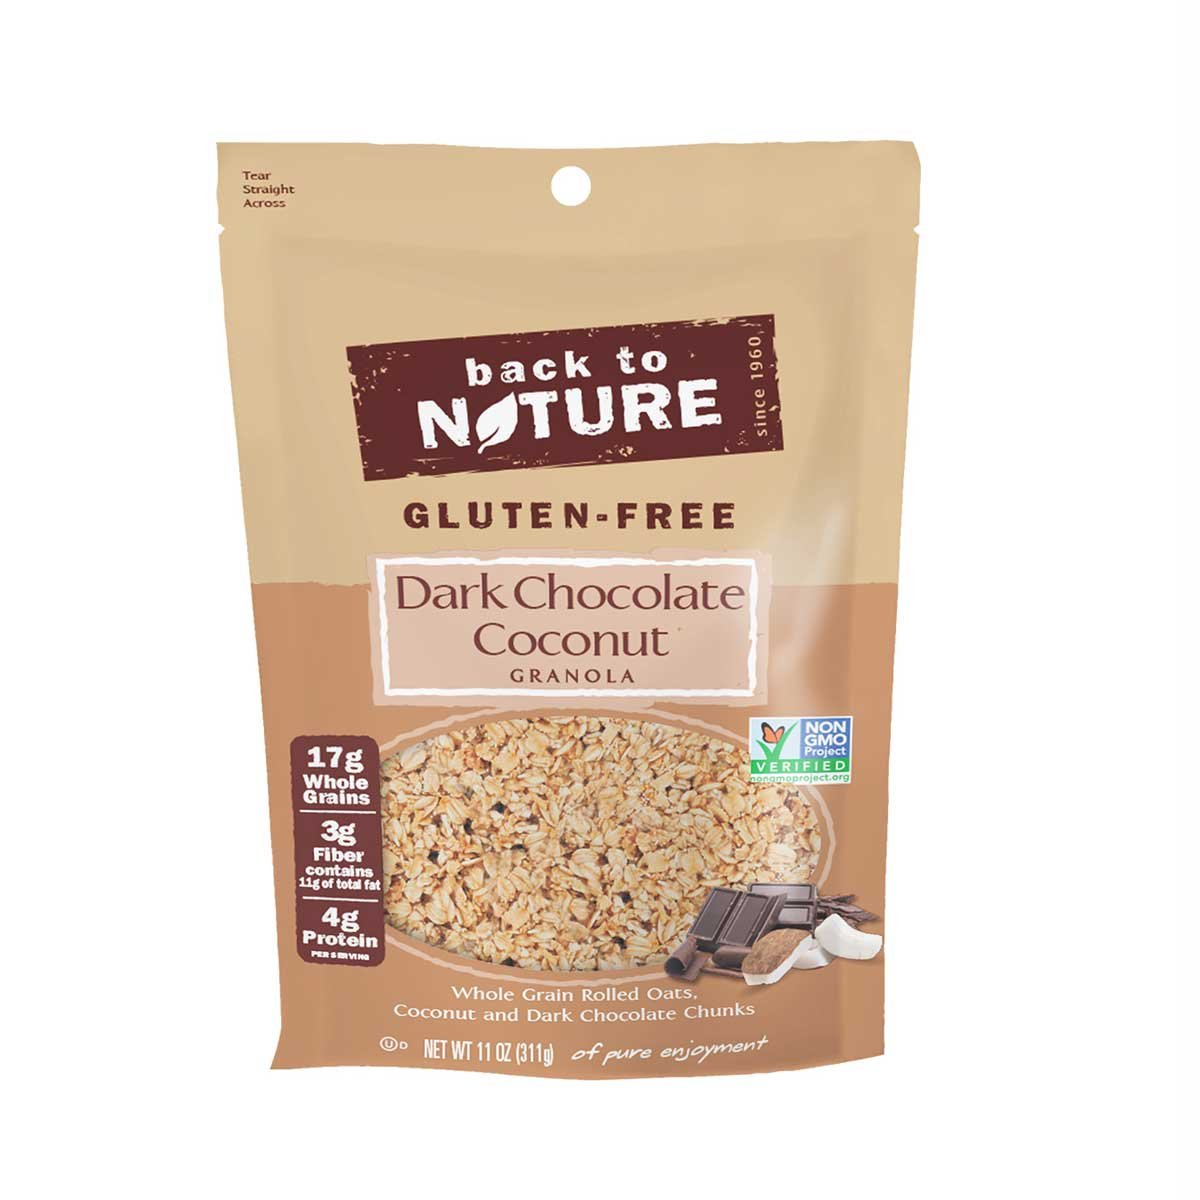 Back to Nature Gluten-Free Dark Chocolate Coconut Granola 11oz (2 Pack))